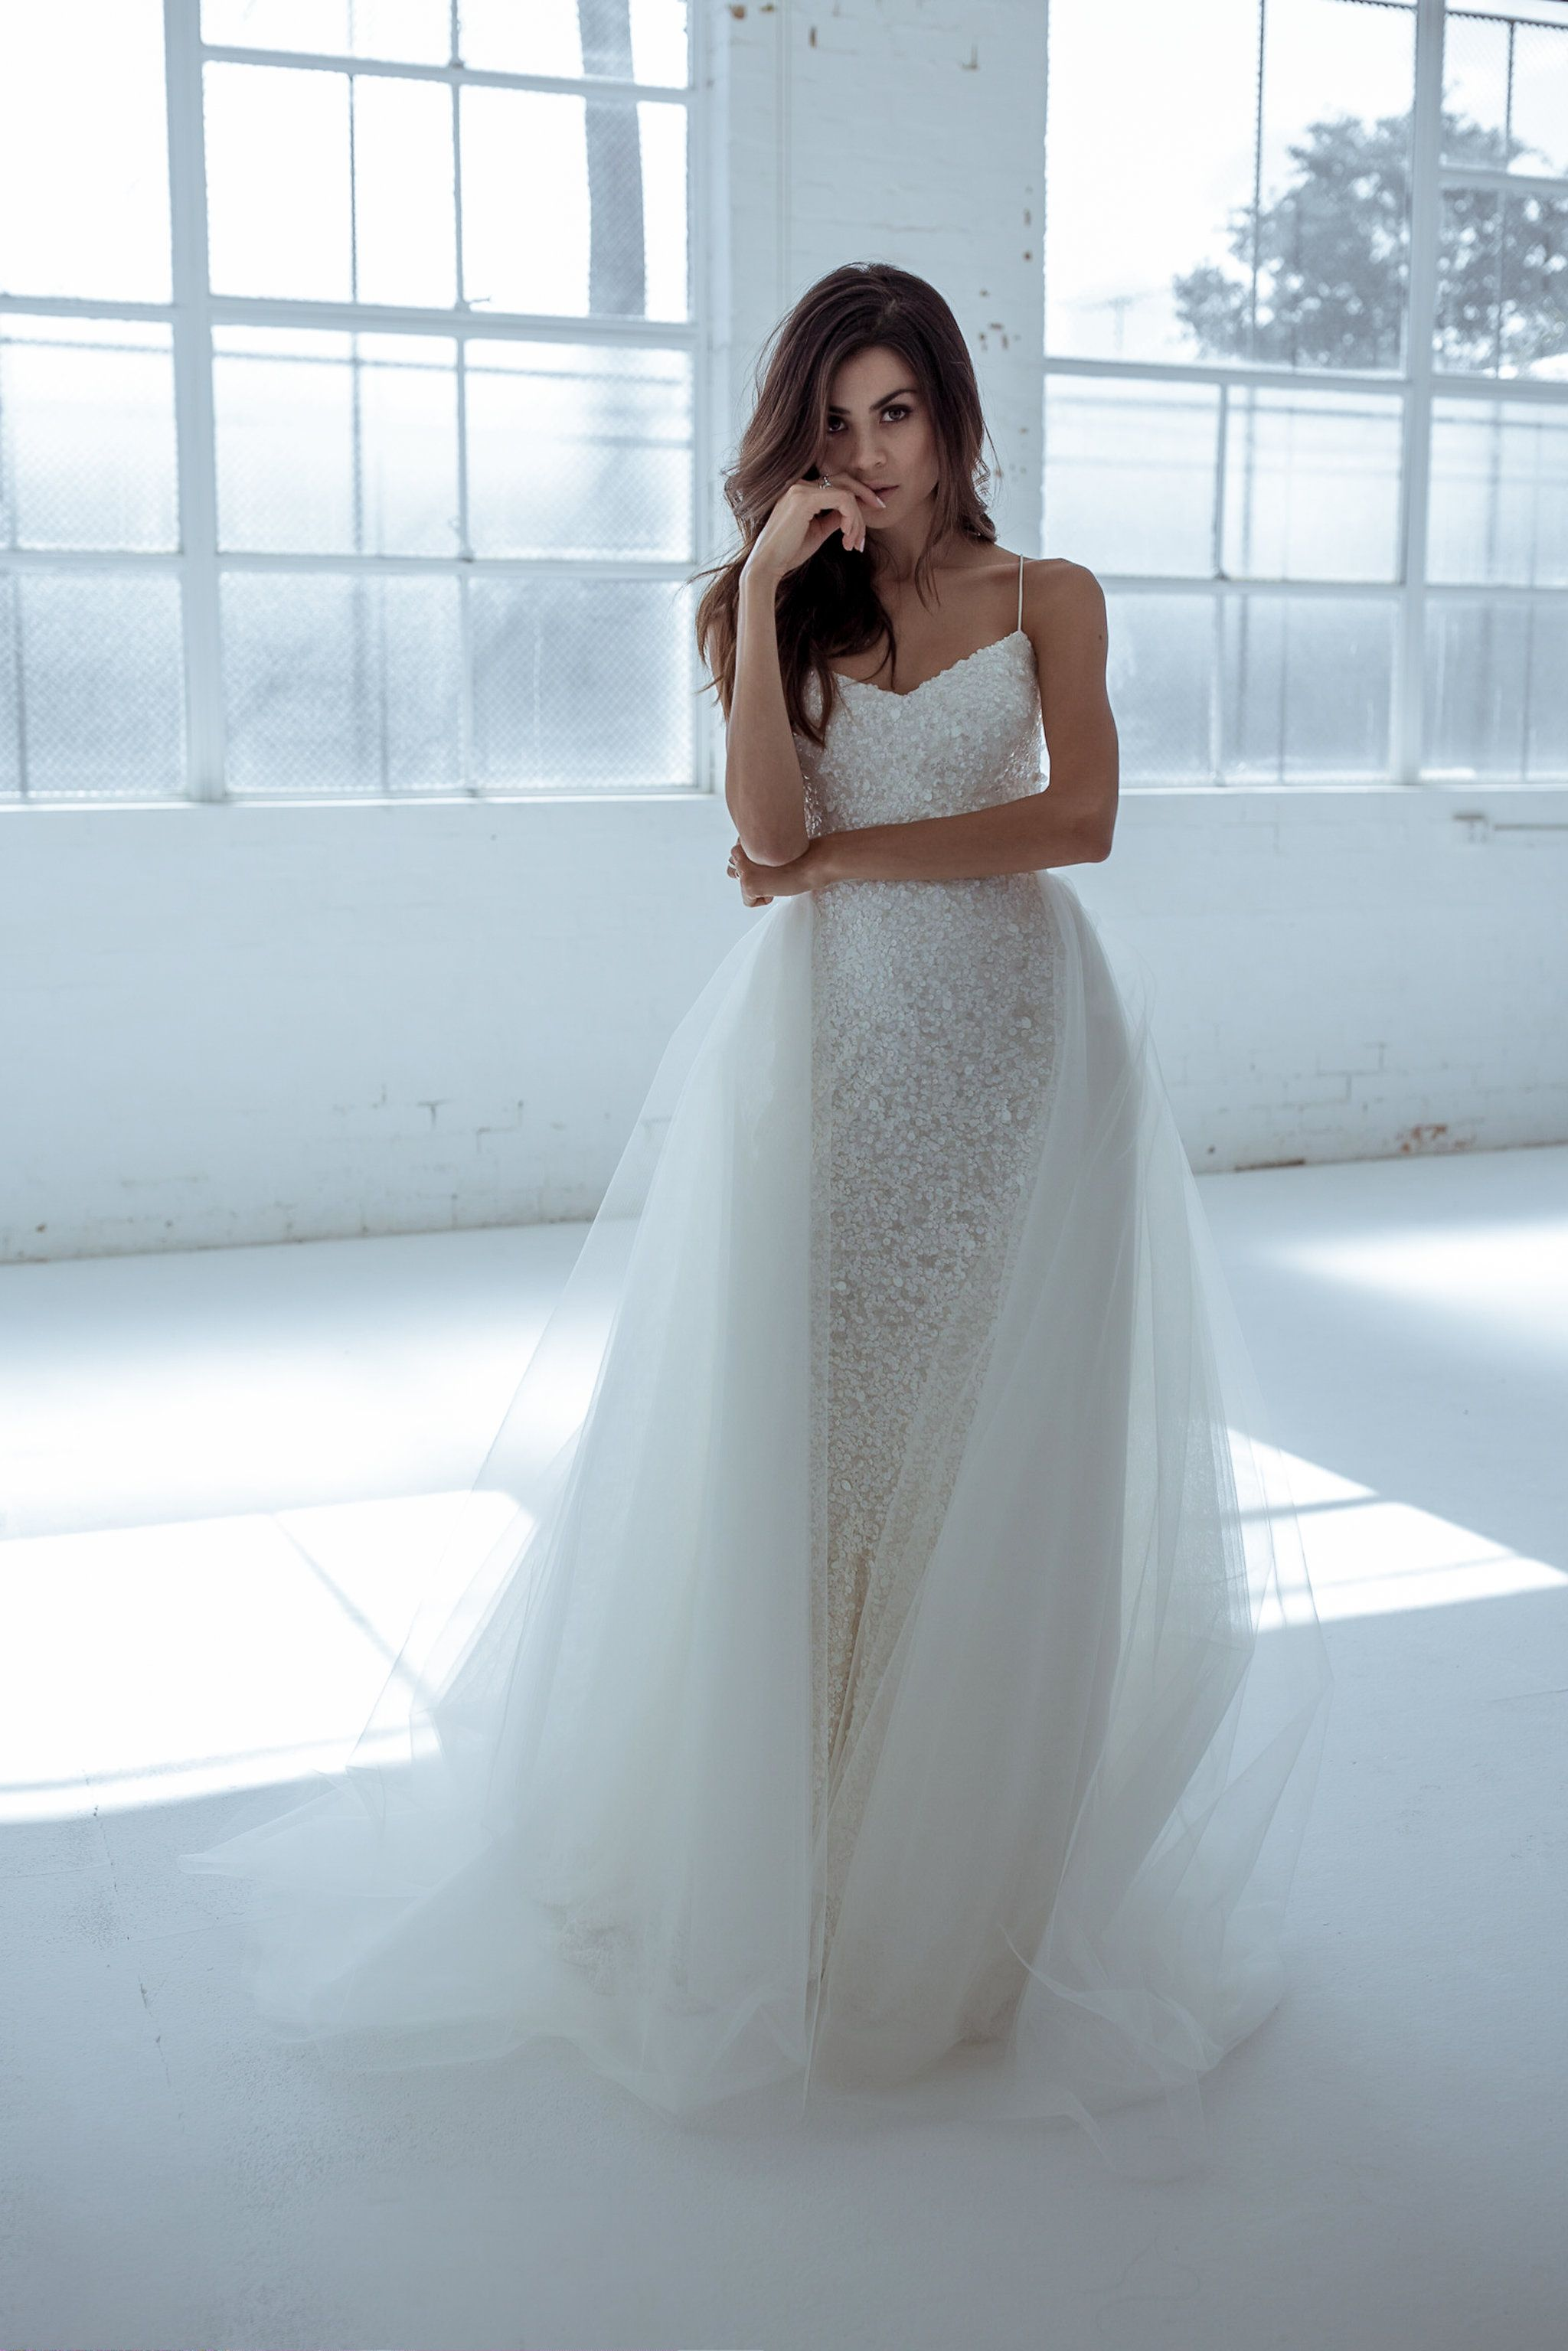 KWH by KAREN WILLIS HOLMES | Exquisite wedding gowns | Pinterest ...